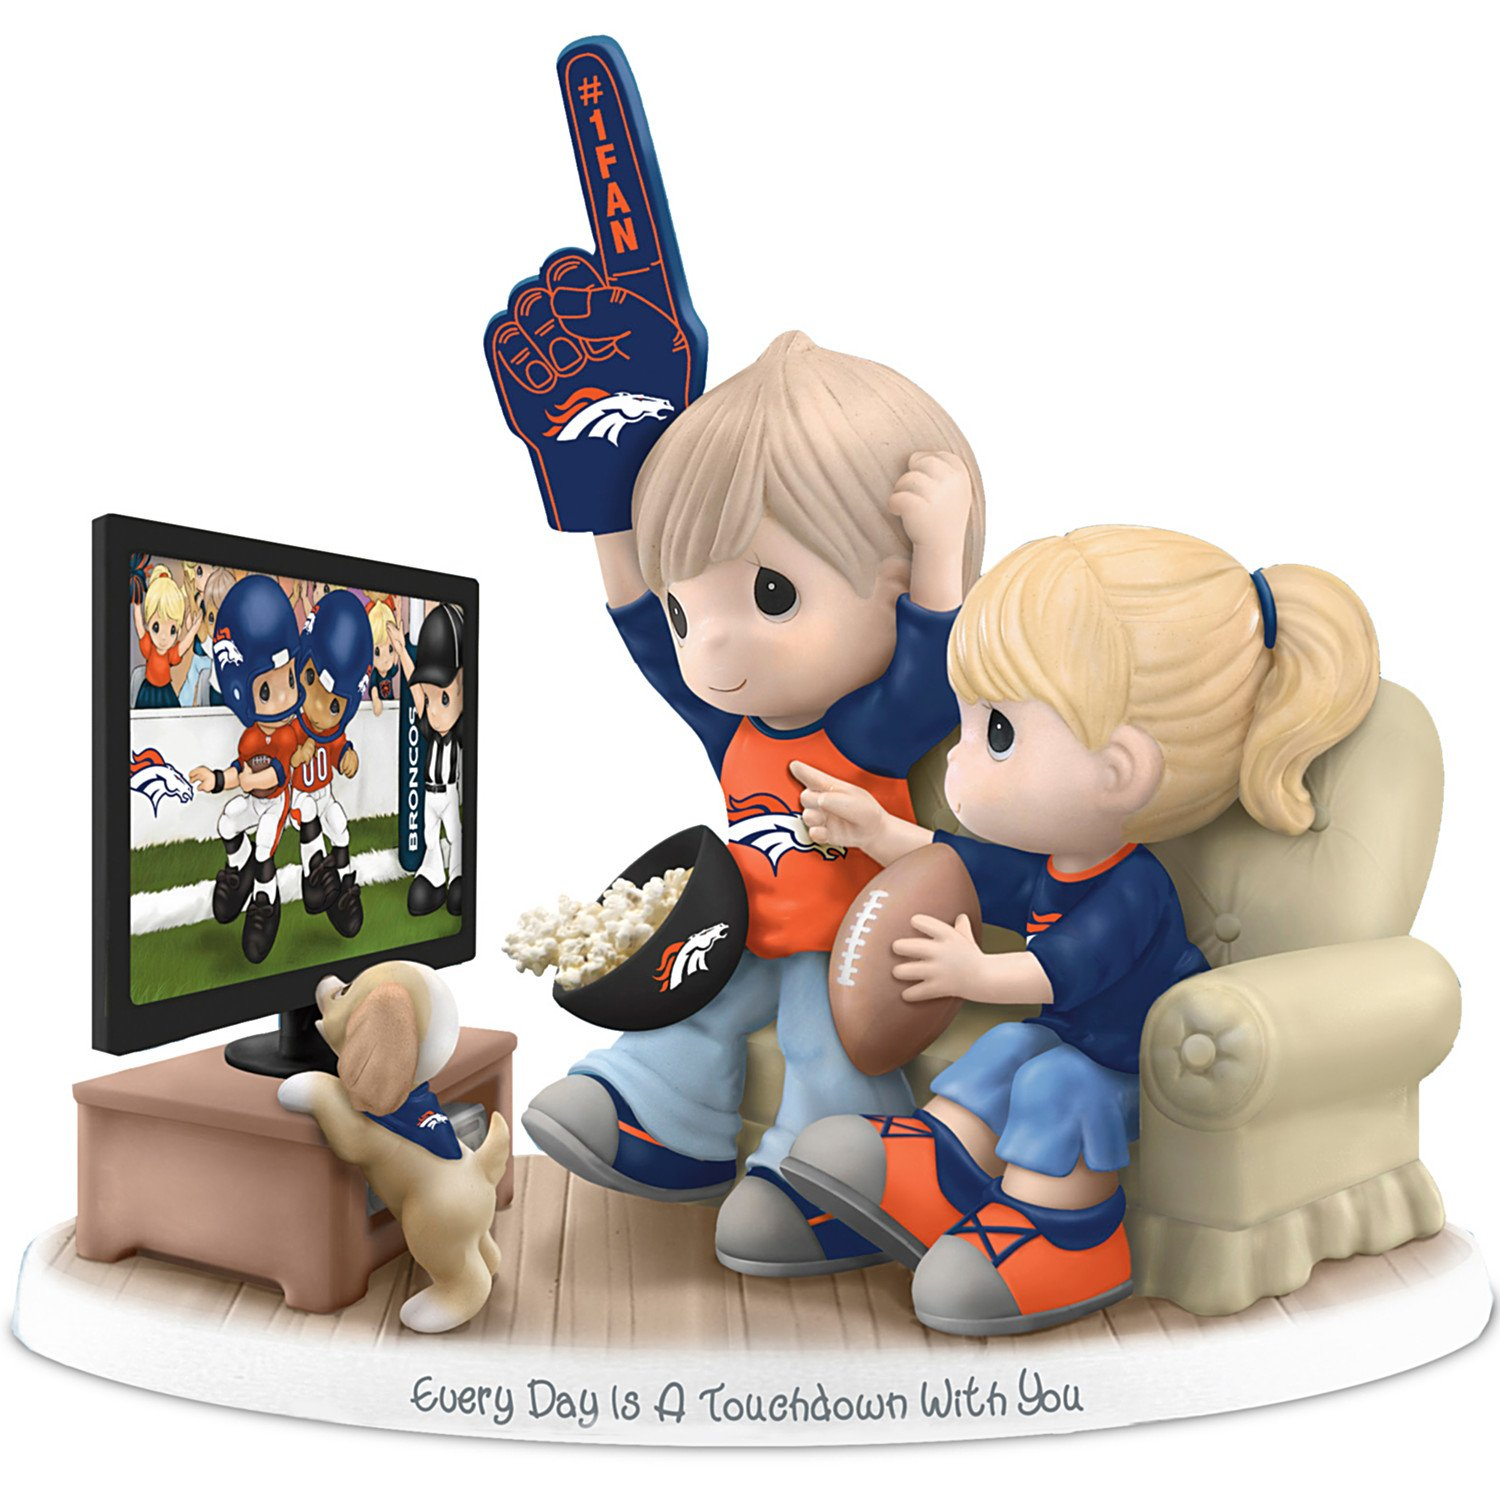 Figurine: Precious Moments Every Day Is A Touchdown With You Broncos Figurine by The Hamilton Collection by The Hamilton Collection